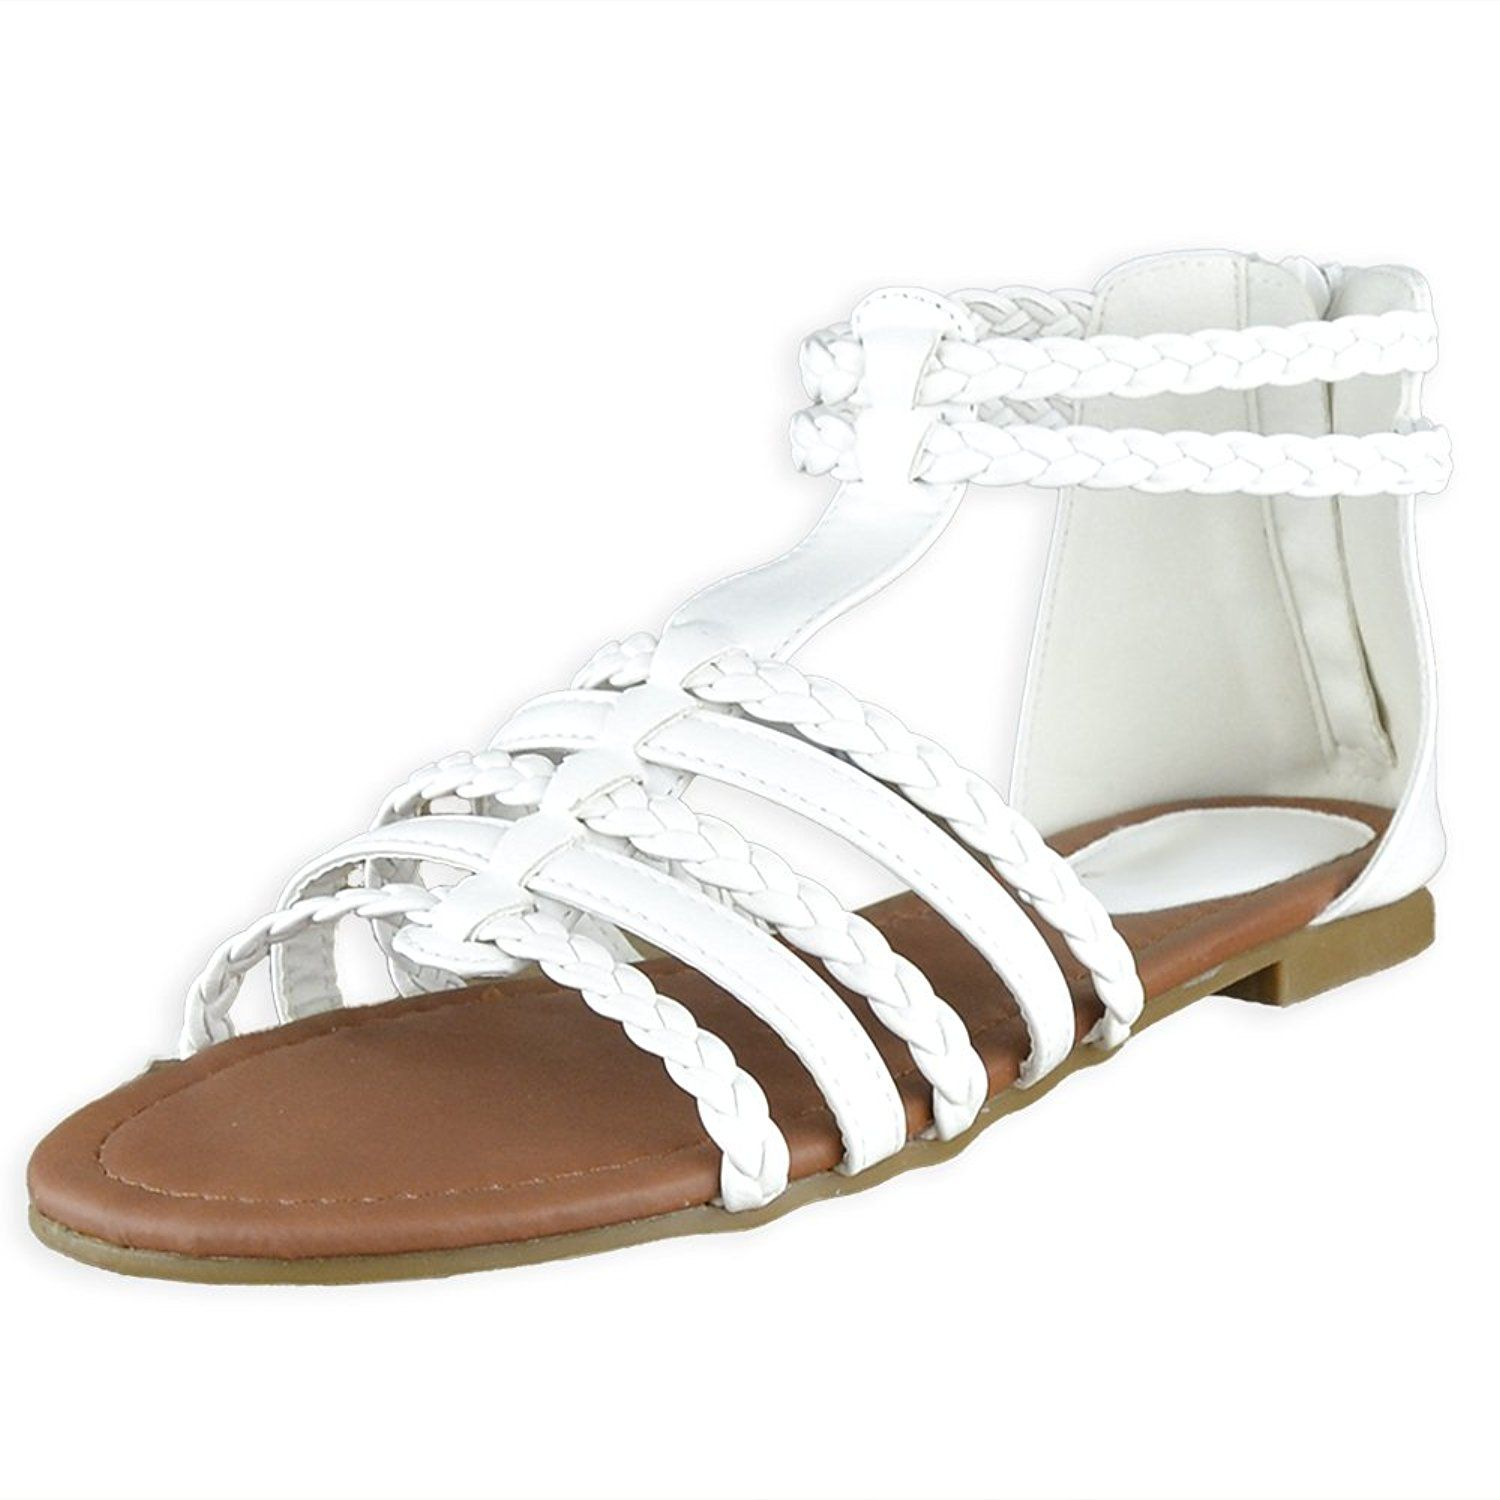 845f77a9e892 Womens Flat Sandals Braided Strappy Gladiator Casual Shoes White    For  more information